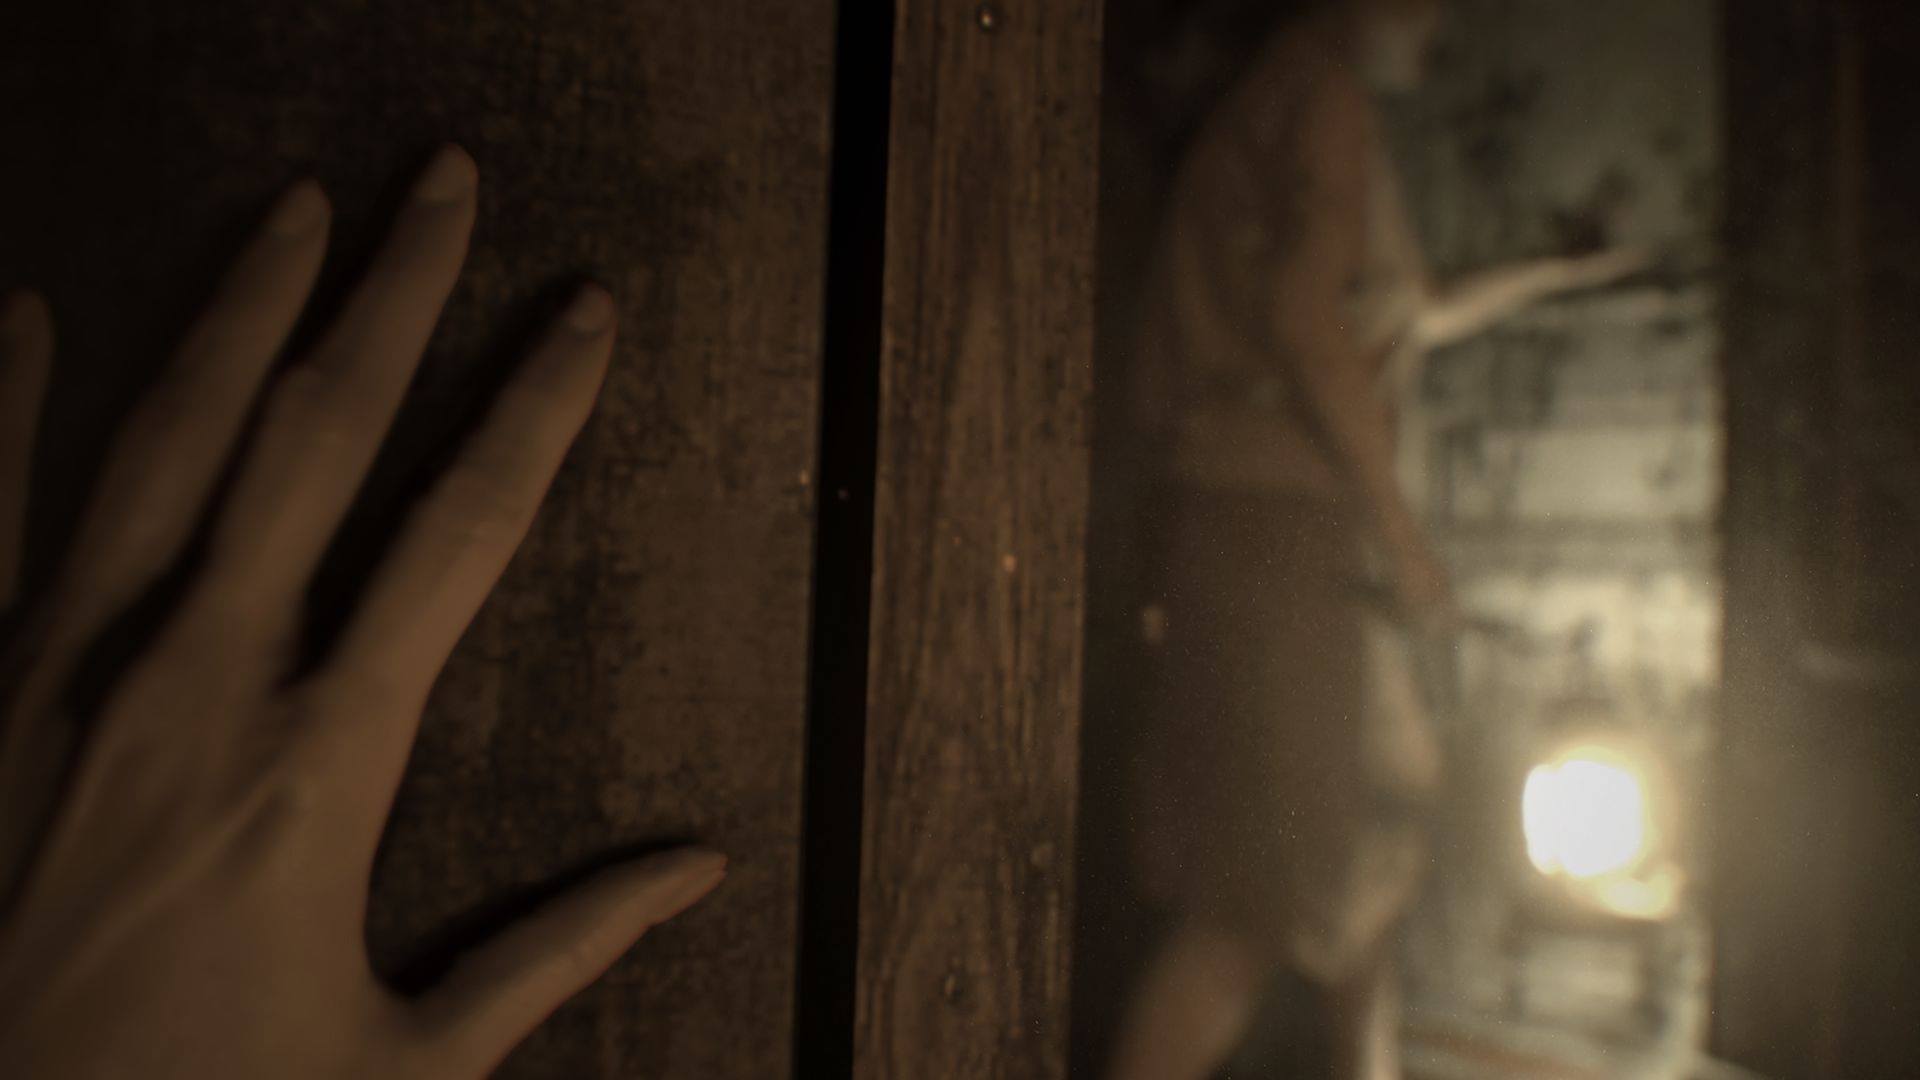 [RUMOR] Resident Evil 7 Info Leaks: Multiple Endings, Returning Characters, and SPOILERS